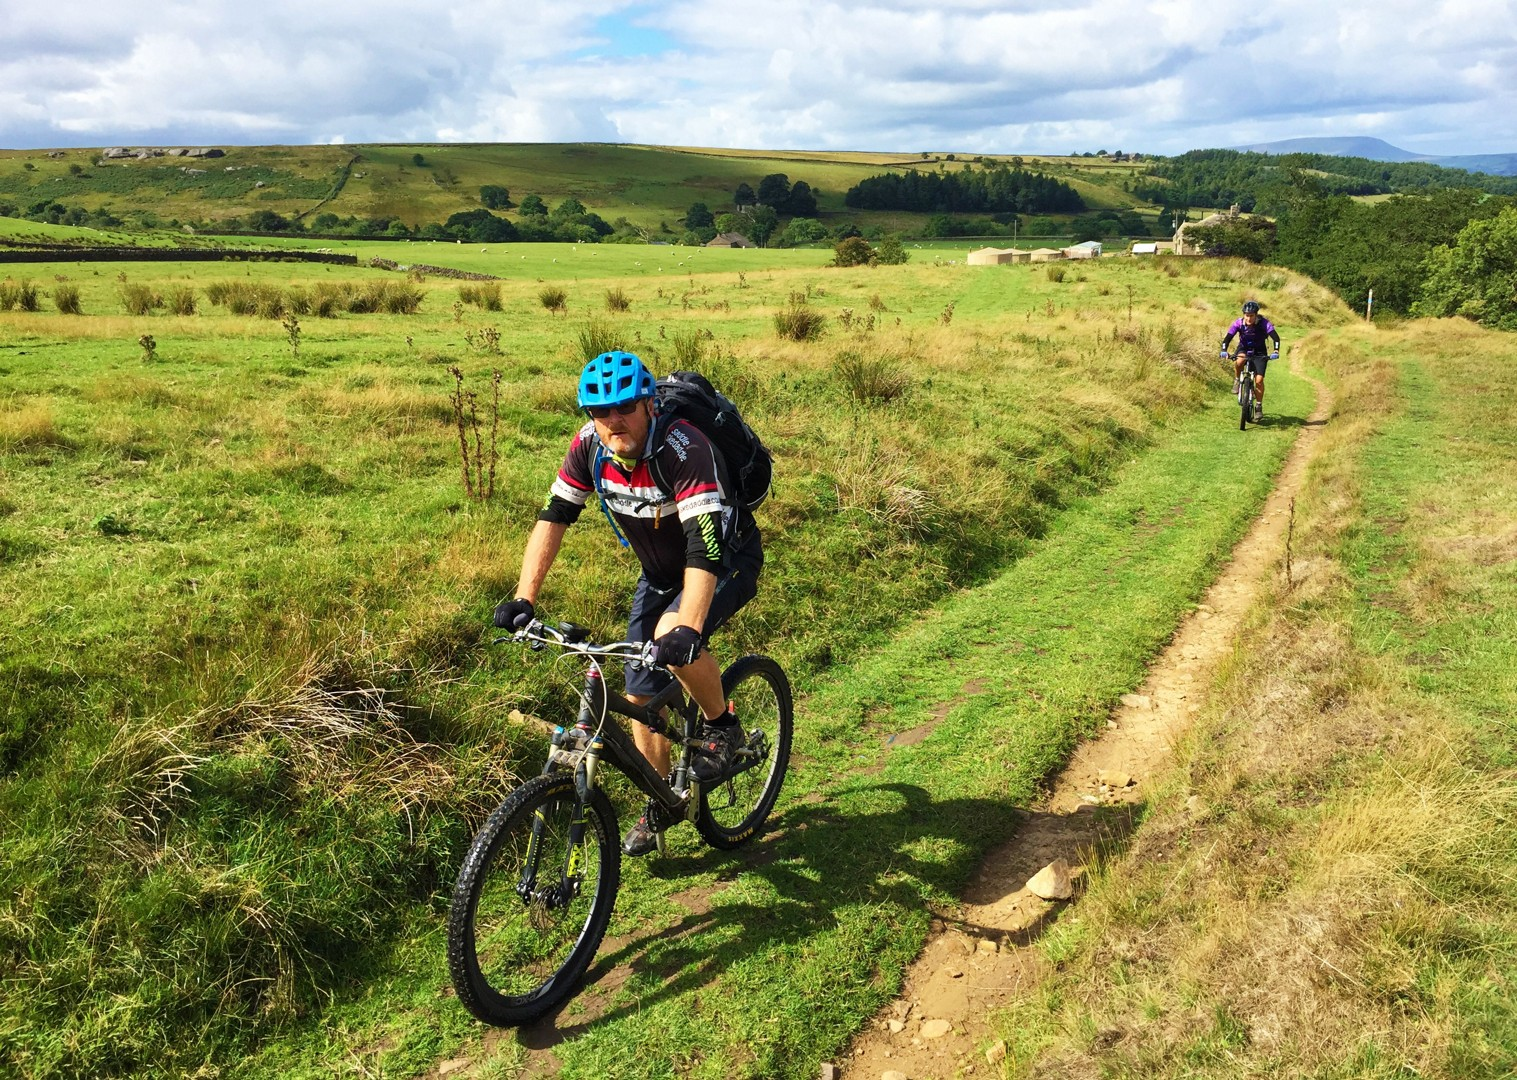 mtb-uk-pennine-bridleway-skedaddle.JPG - UK - Pennine Bridleway - Guided Mountain Bike Weekend - Mountain Biking